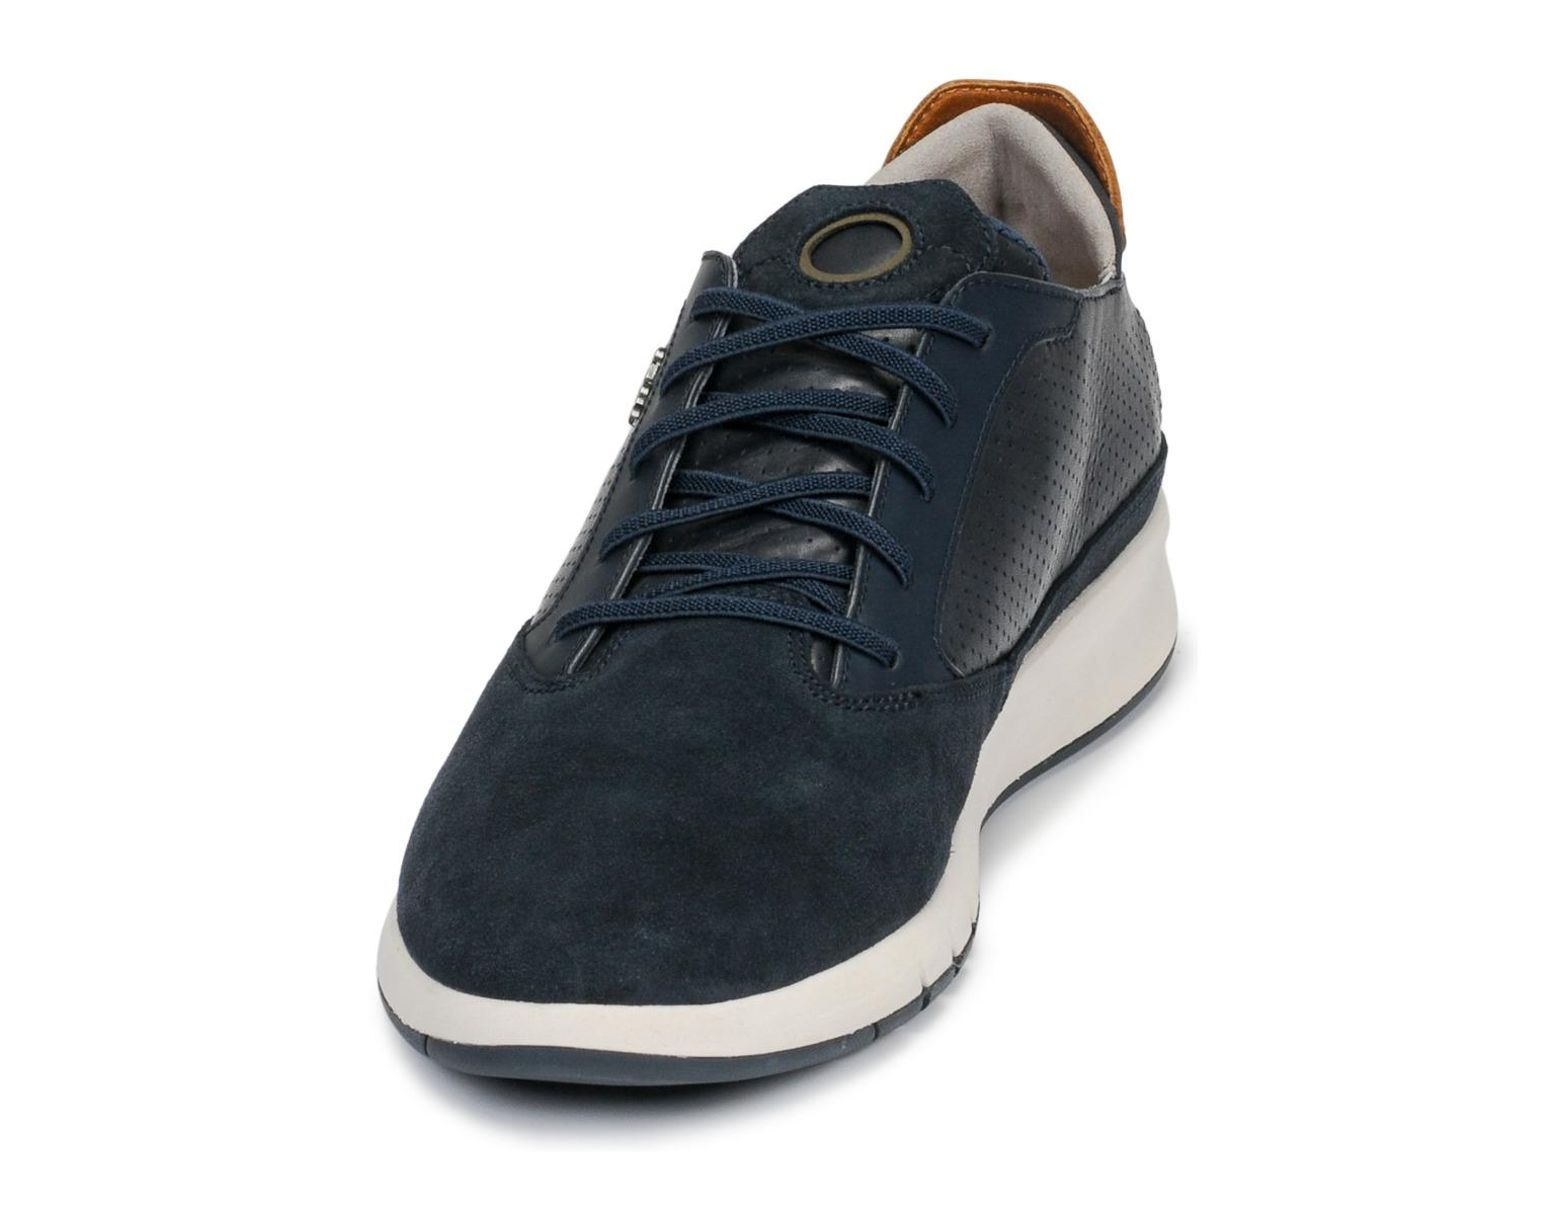 c508a9261d Geox U Aerantis Shoes (trainers) in Blue for Men - Lyst